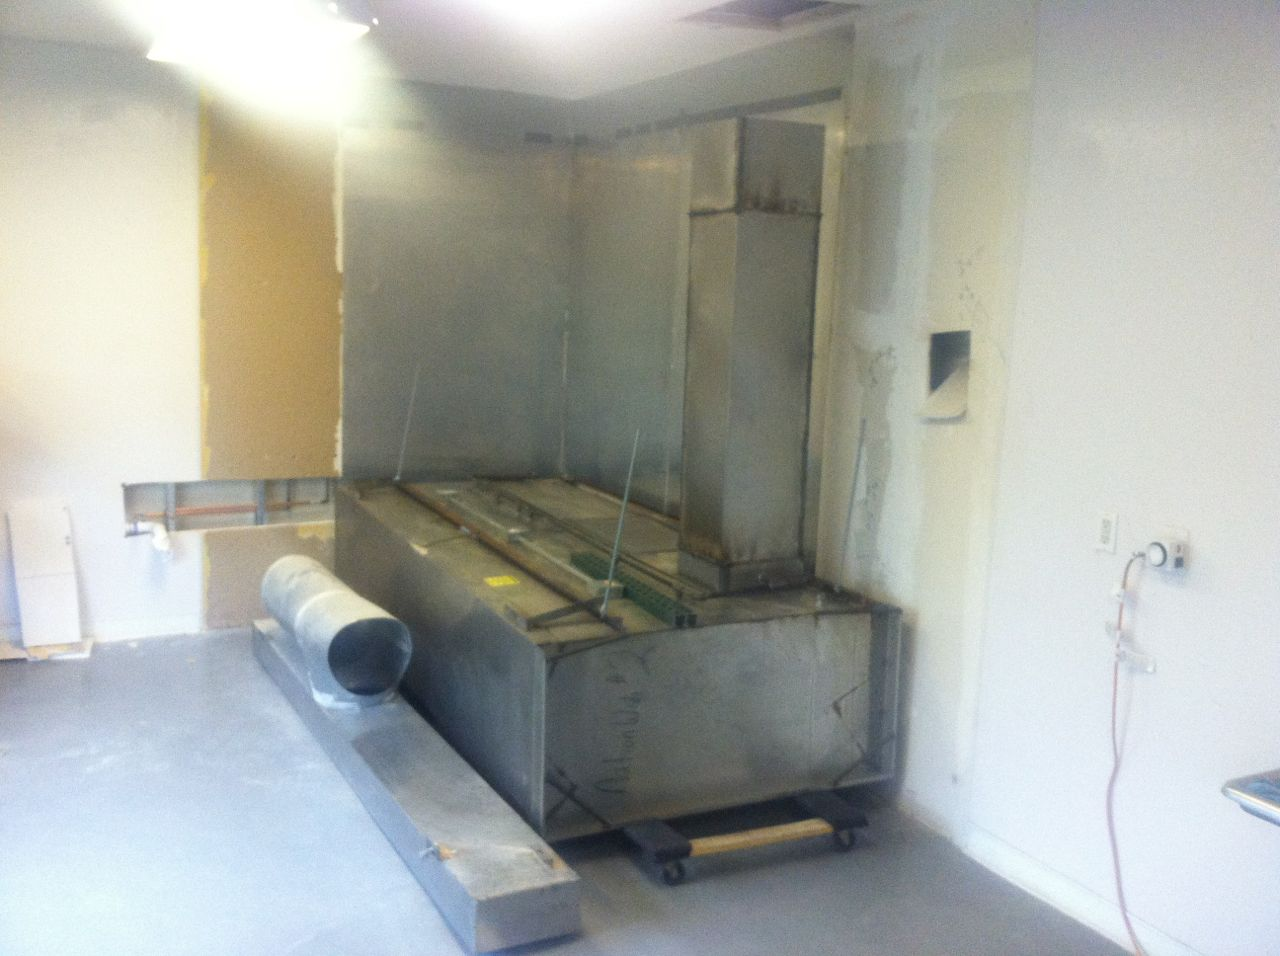 The exhaust hood provided by our landlord about to go up...